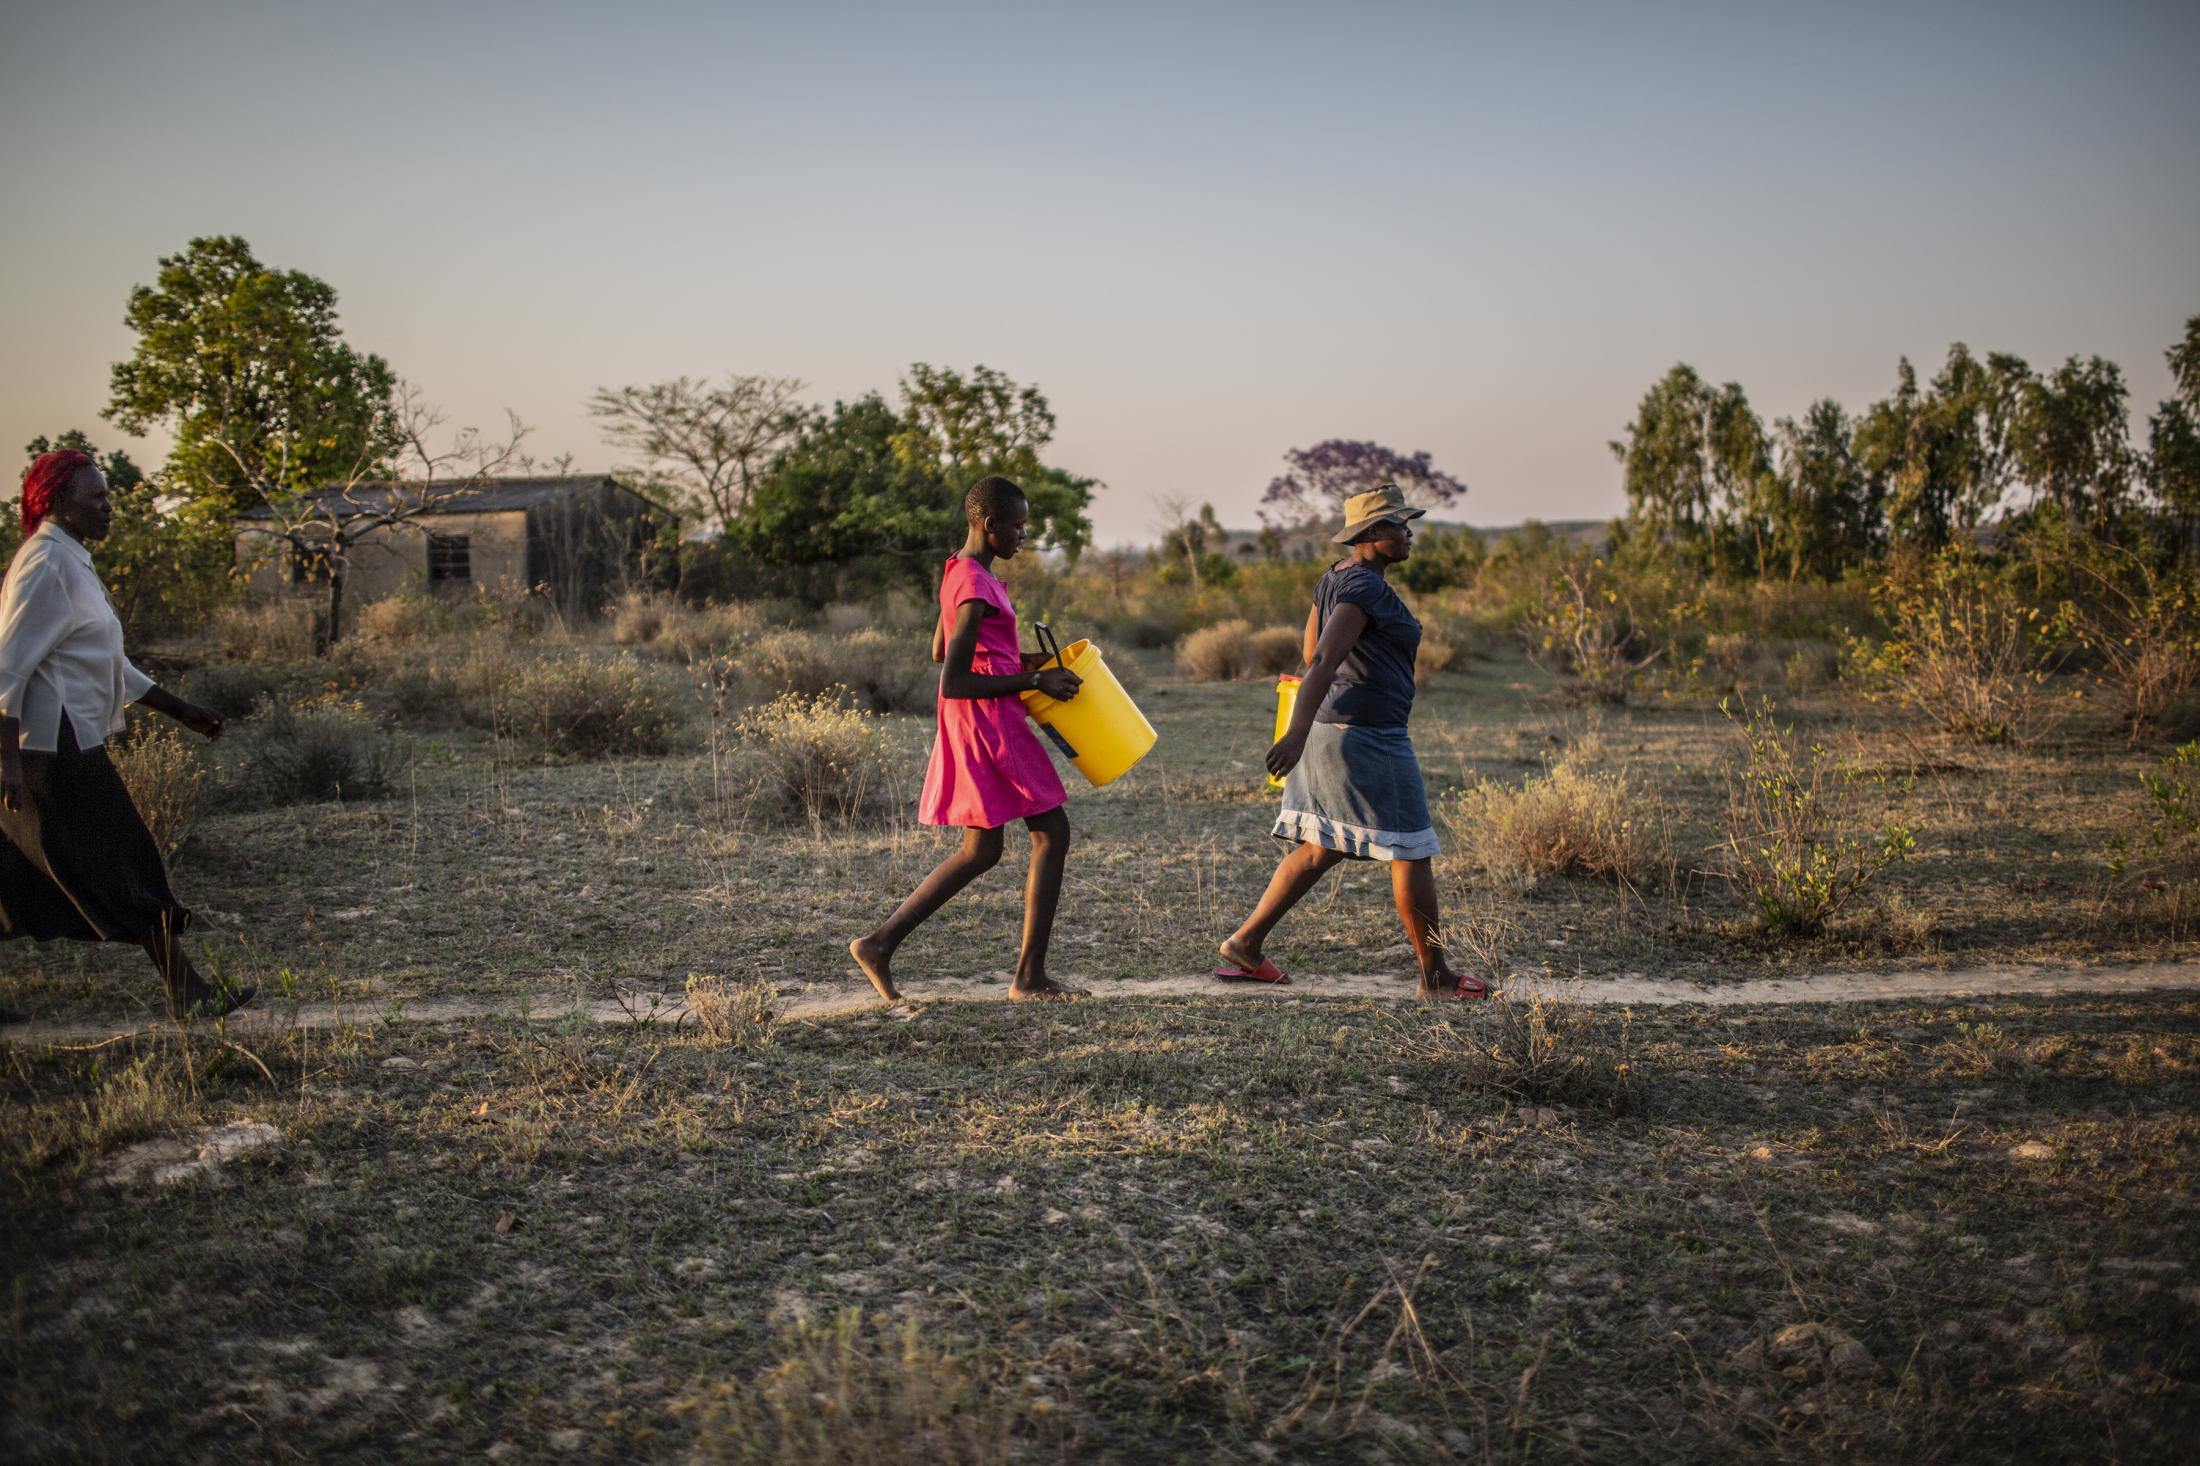 Tariro Chinamo (43) (R), walks with her daughter, Lana Fariva (14) and her mother-in-law Christina Chamissa (58) to fetch water in Masvingo, Zimbabwe on October 07, 2019. The family has no electricity or water at home and have to walk for over a km to a spring to fetch water everyday. They have no choice but to use this for drinking and cooking as well, so it will be boiled.